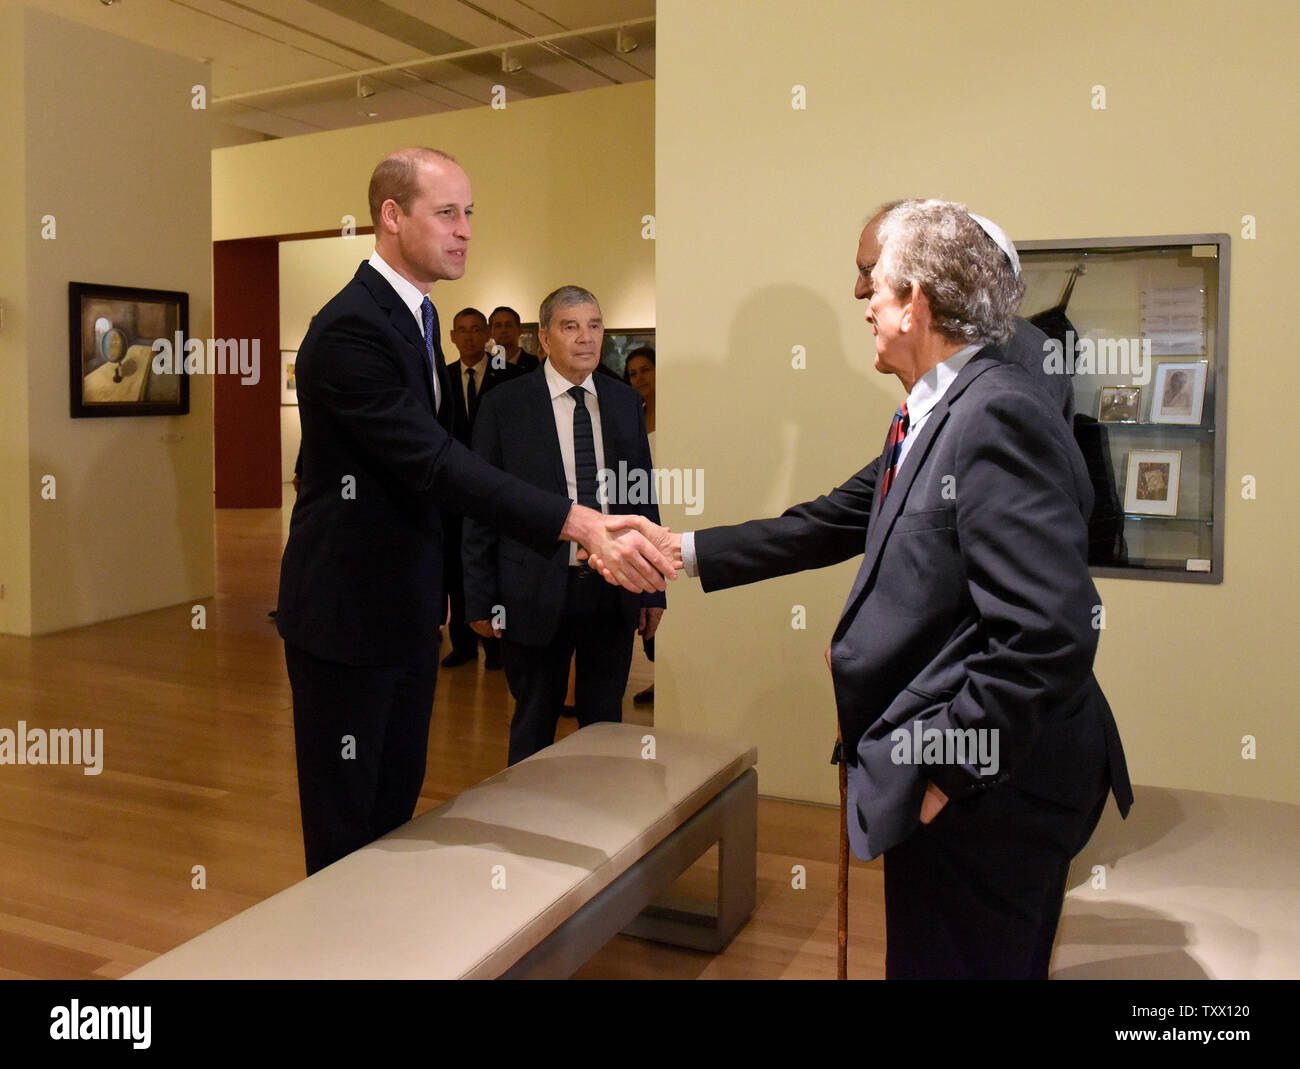 Prince William, the Duke of Cambridge, meets Holocaust survivors during a tour of  Yad Vashem, the World Holocaust Remembrance Center, in Jerusalem, Israel, June 26, 2018. The survivors, Paul Alexander and Henry Foner, were spared destruction as Jewish children in Germany, as Britain took them with thousands of others in the so-called 'Kindertransport'. Photo by Debbie Hill/UPI - Stock Image